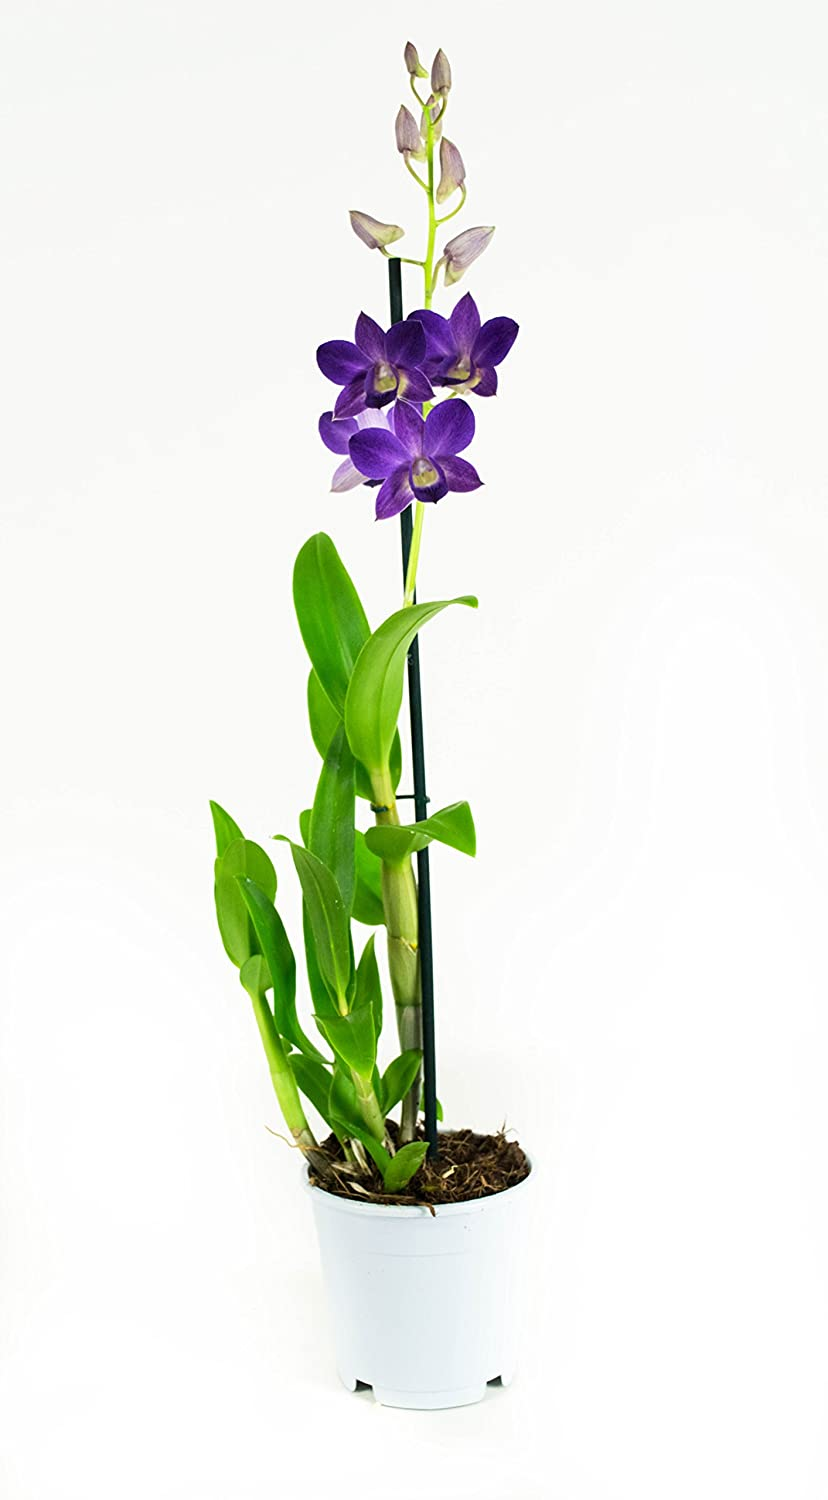 FloraAtHome - Orchid - Dendrobium Sa-Nook - Thailand Black - 60cm high - set of 2